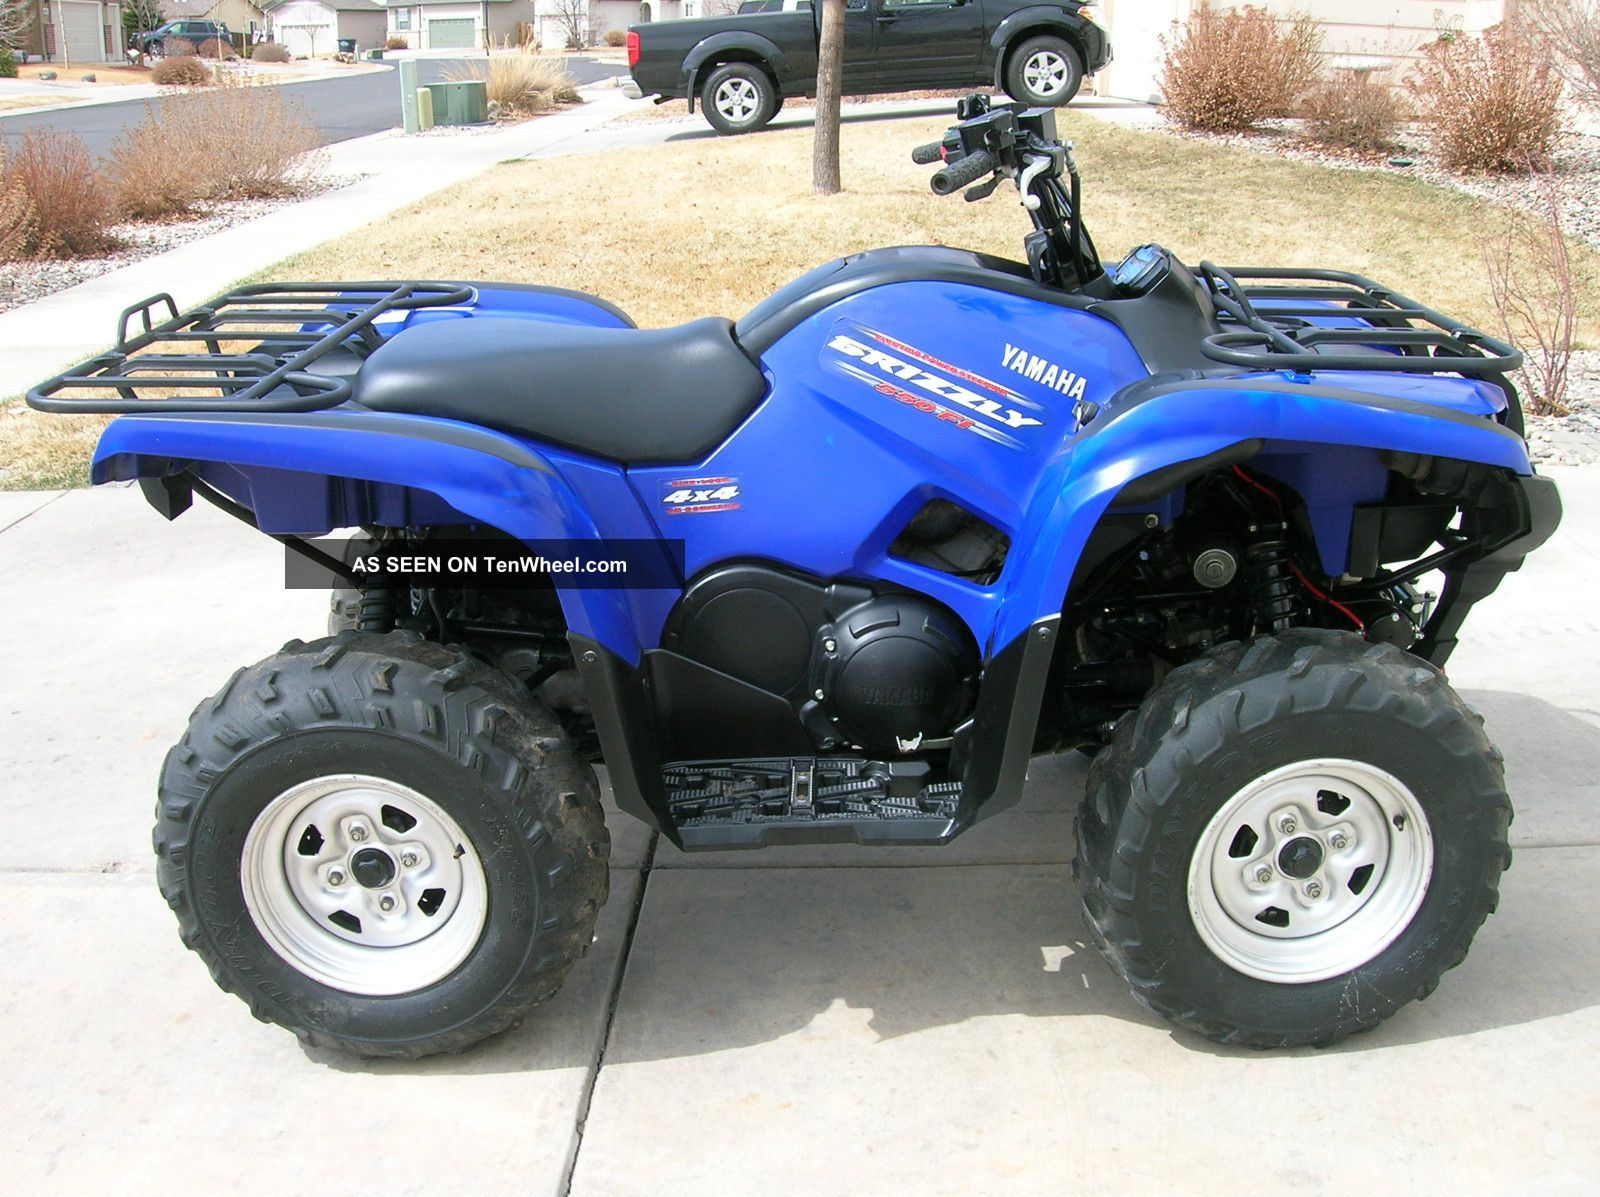 2010 yamaha grizzly 550 eps for Yamaha clp 550 specifications